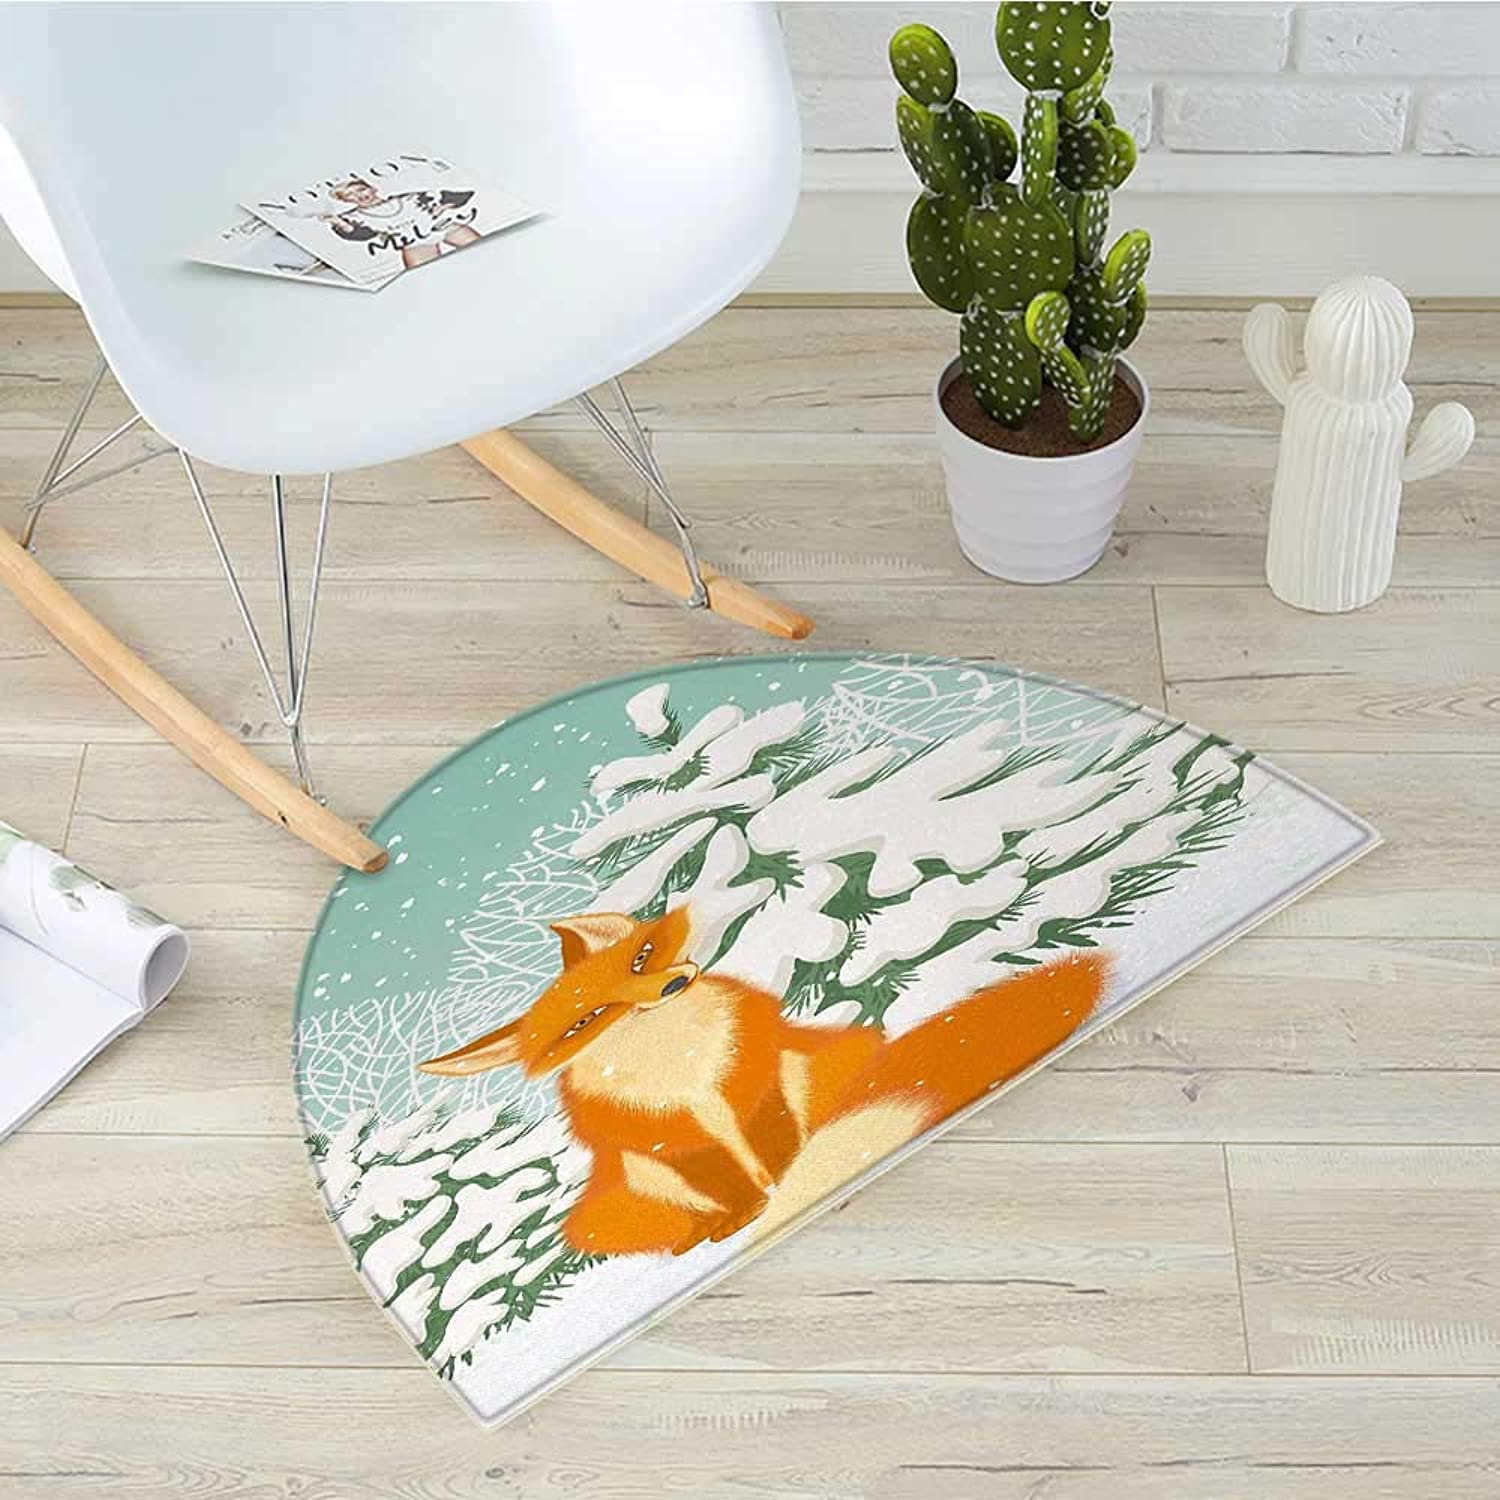 Fox Half Round Door mats Red Fox Sitting in Winter Forest Snow Covered Pine Trees Xmas Cartoon Bathroom Mat H 31.5  xD 47.2  orange White Almond Green